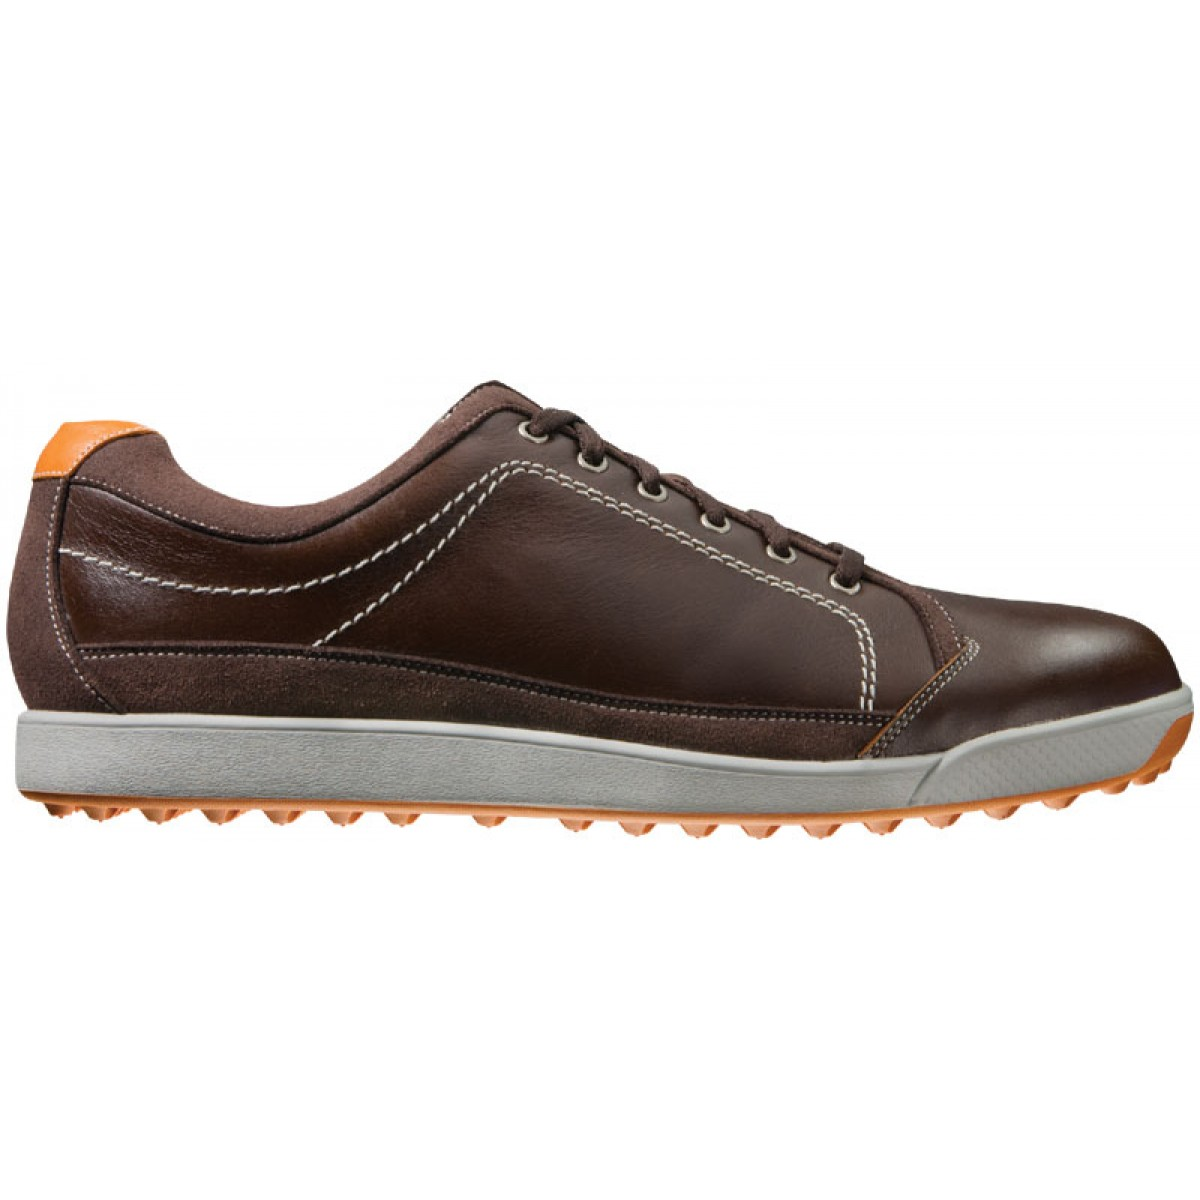 footjoy contour casual spikeless golf shoes mens closeout